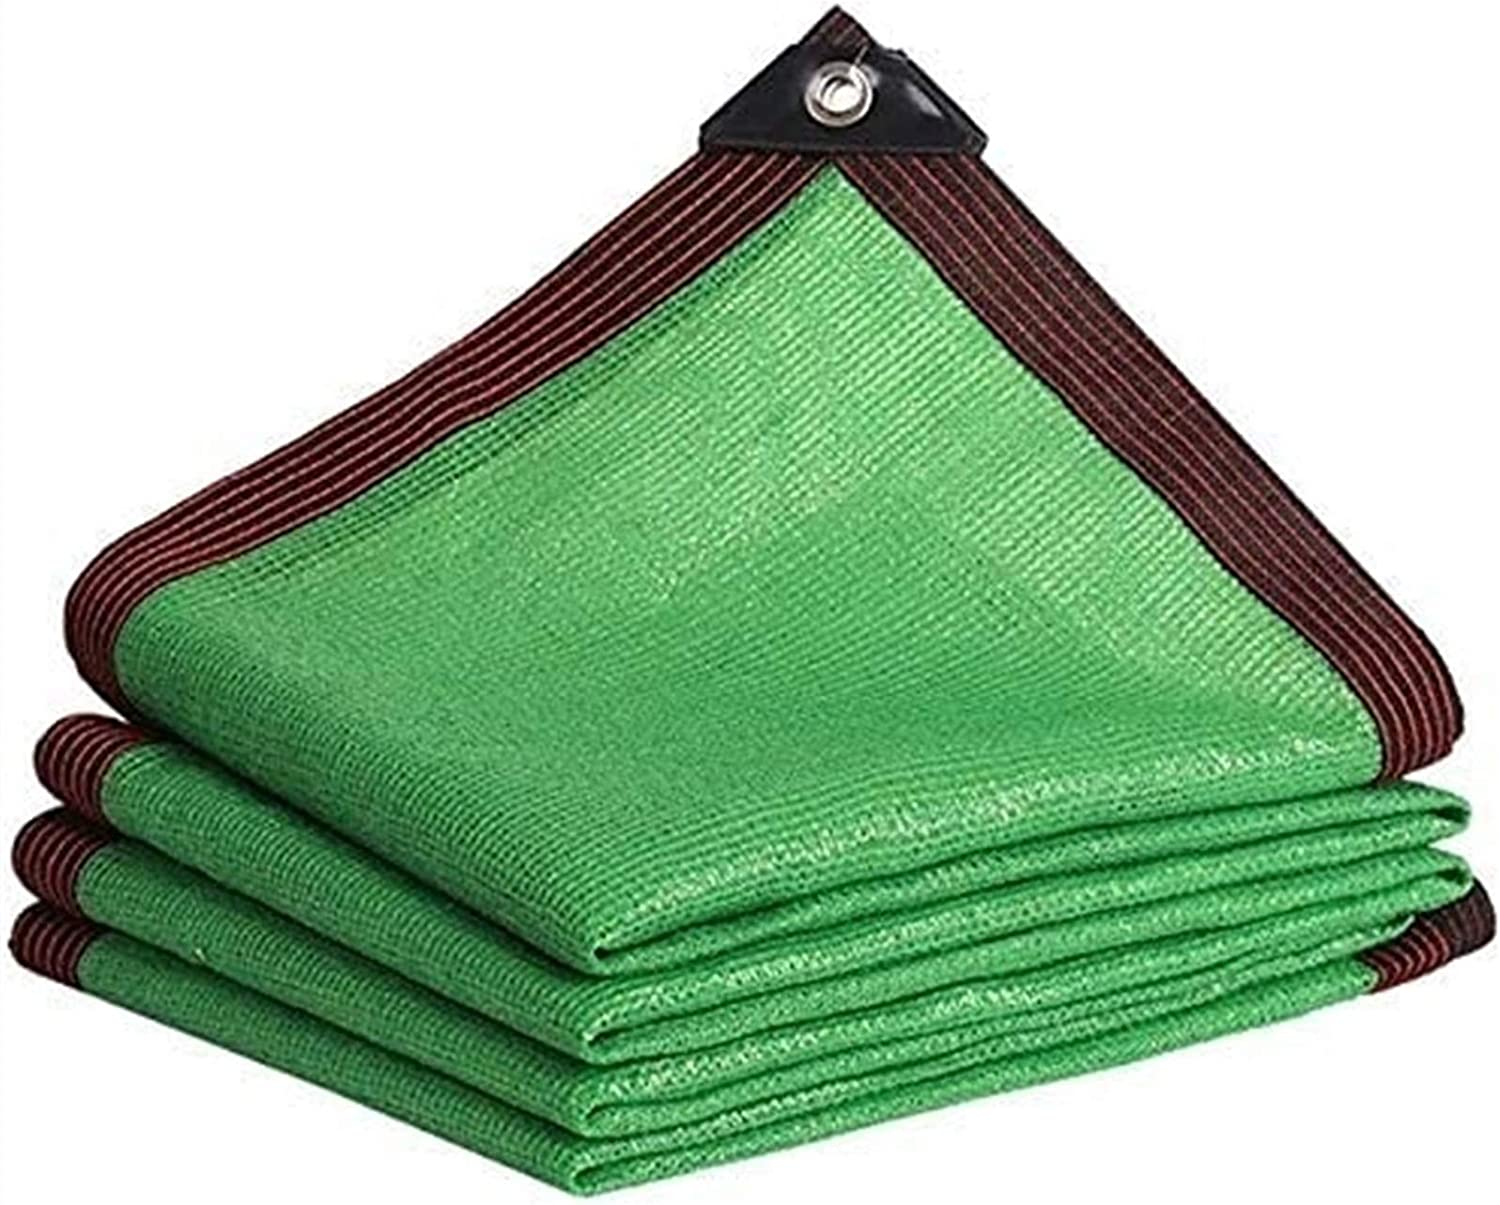 GXBCS Shade Cloth Plants Protection Net Garden P Ranking TOP8 Deluxe Vegetable Plant